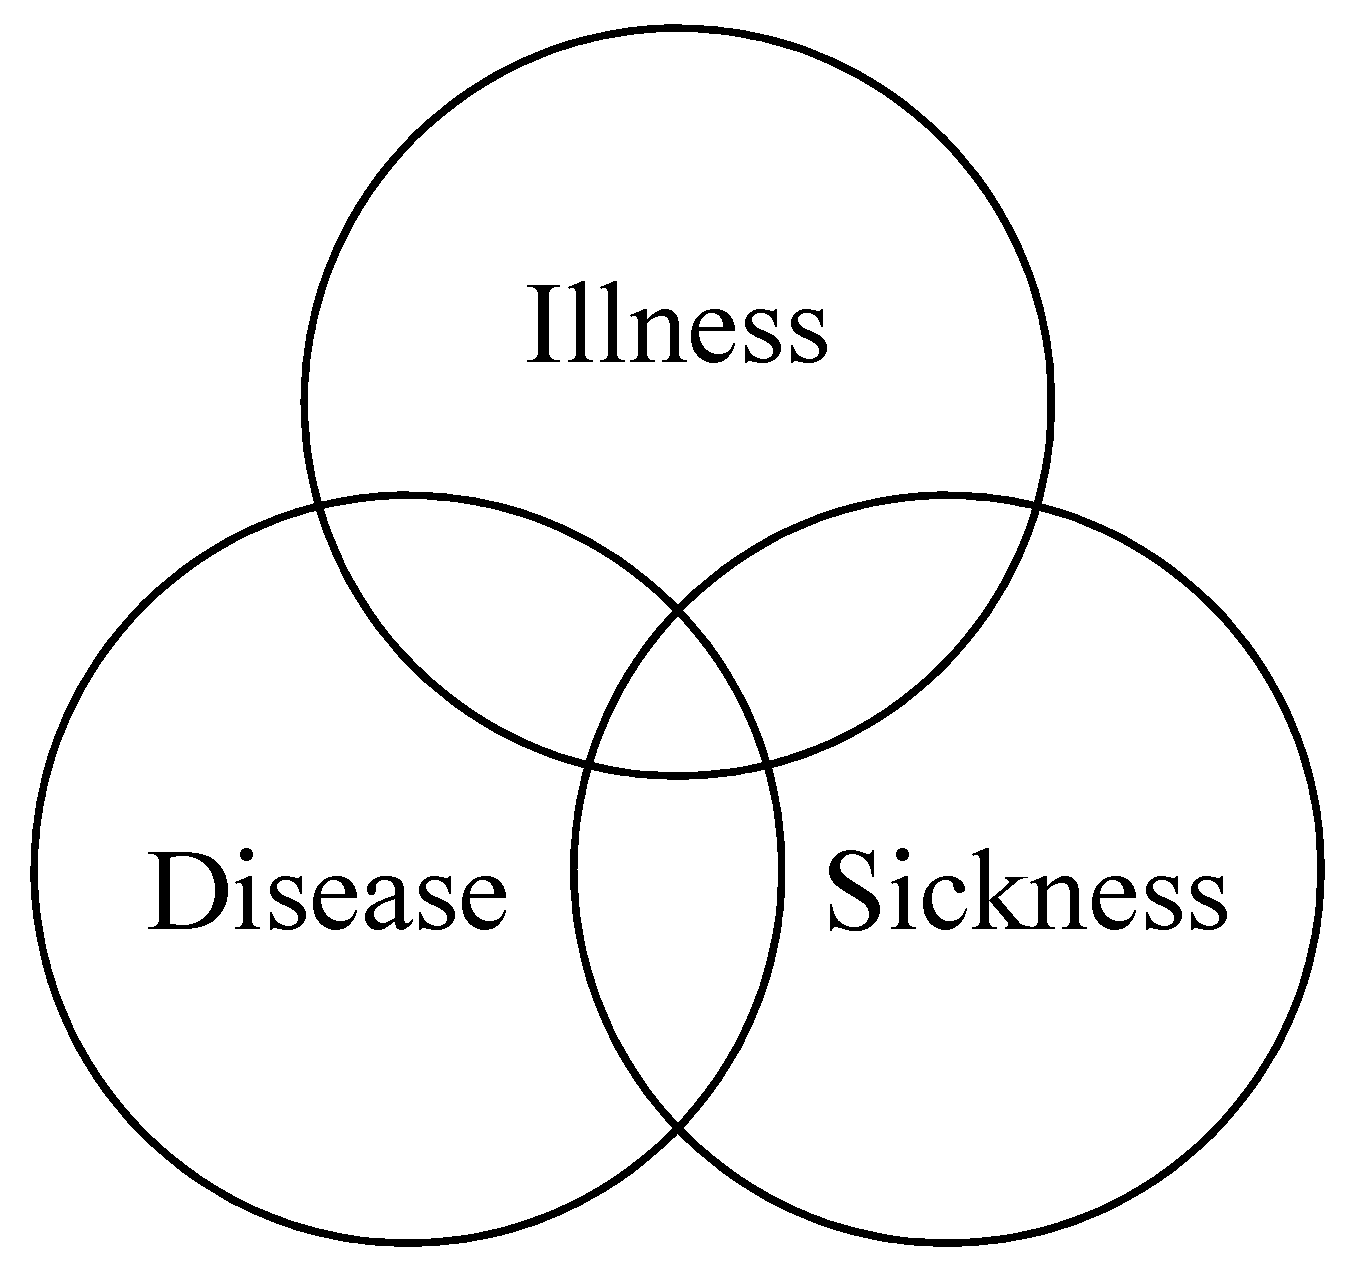 Diseases Physical Ailments: Visions Of Illness, Disease